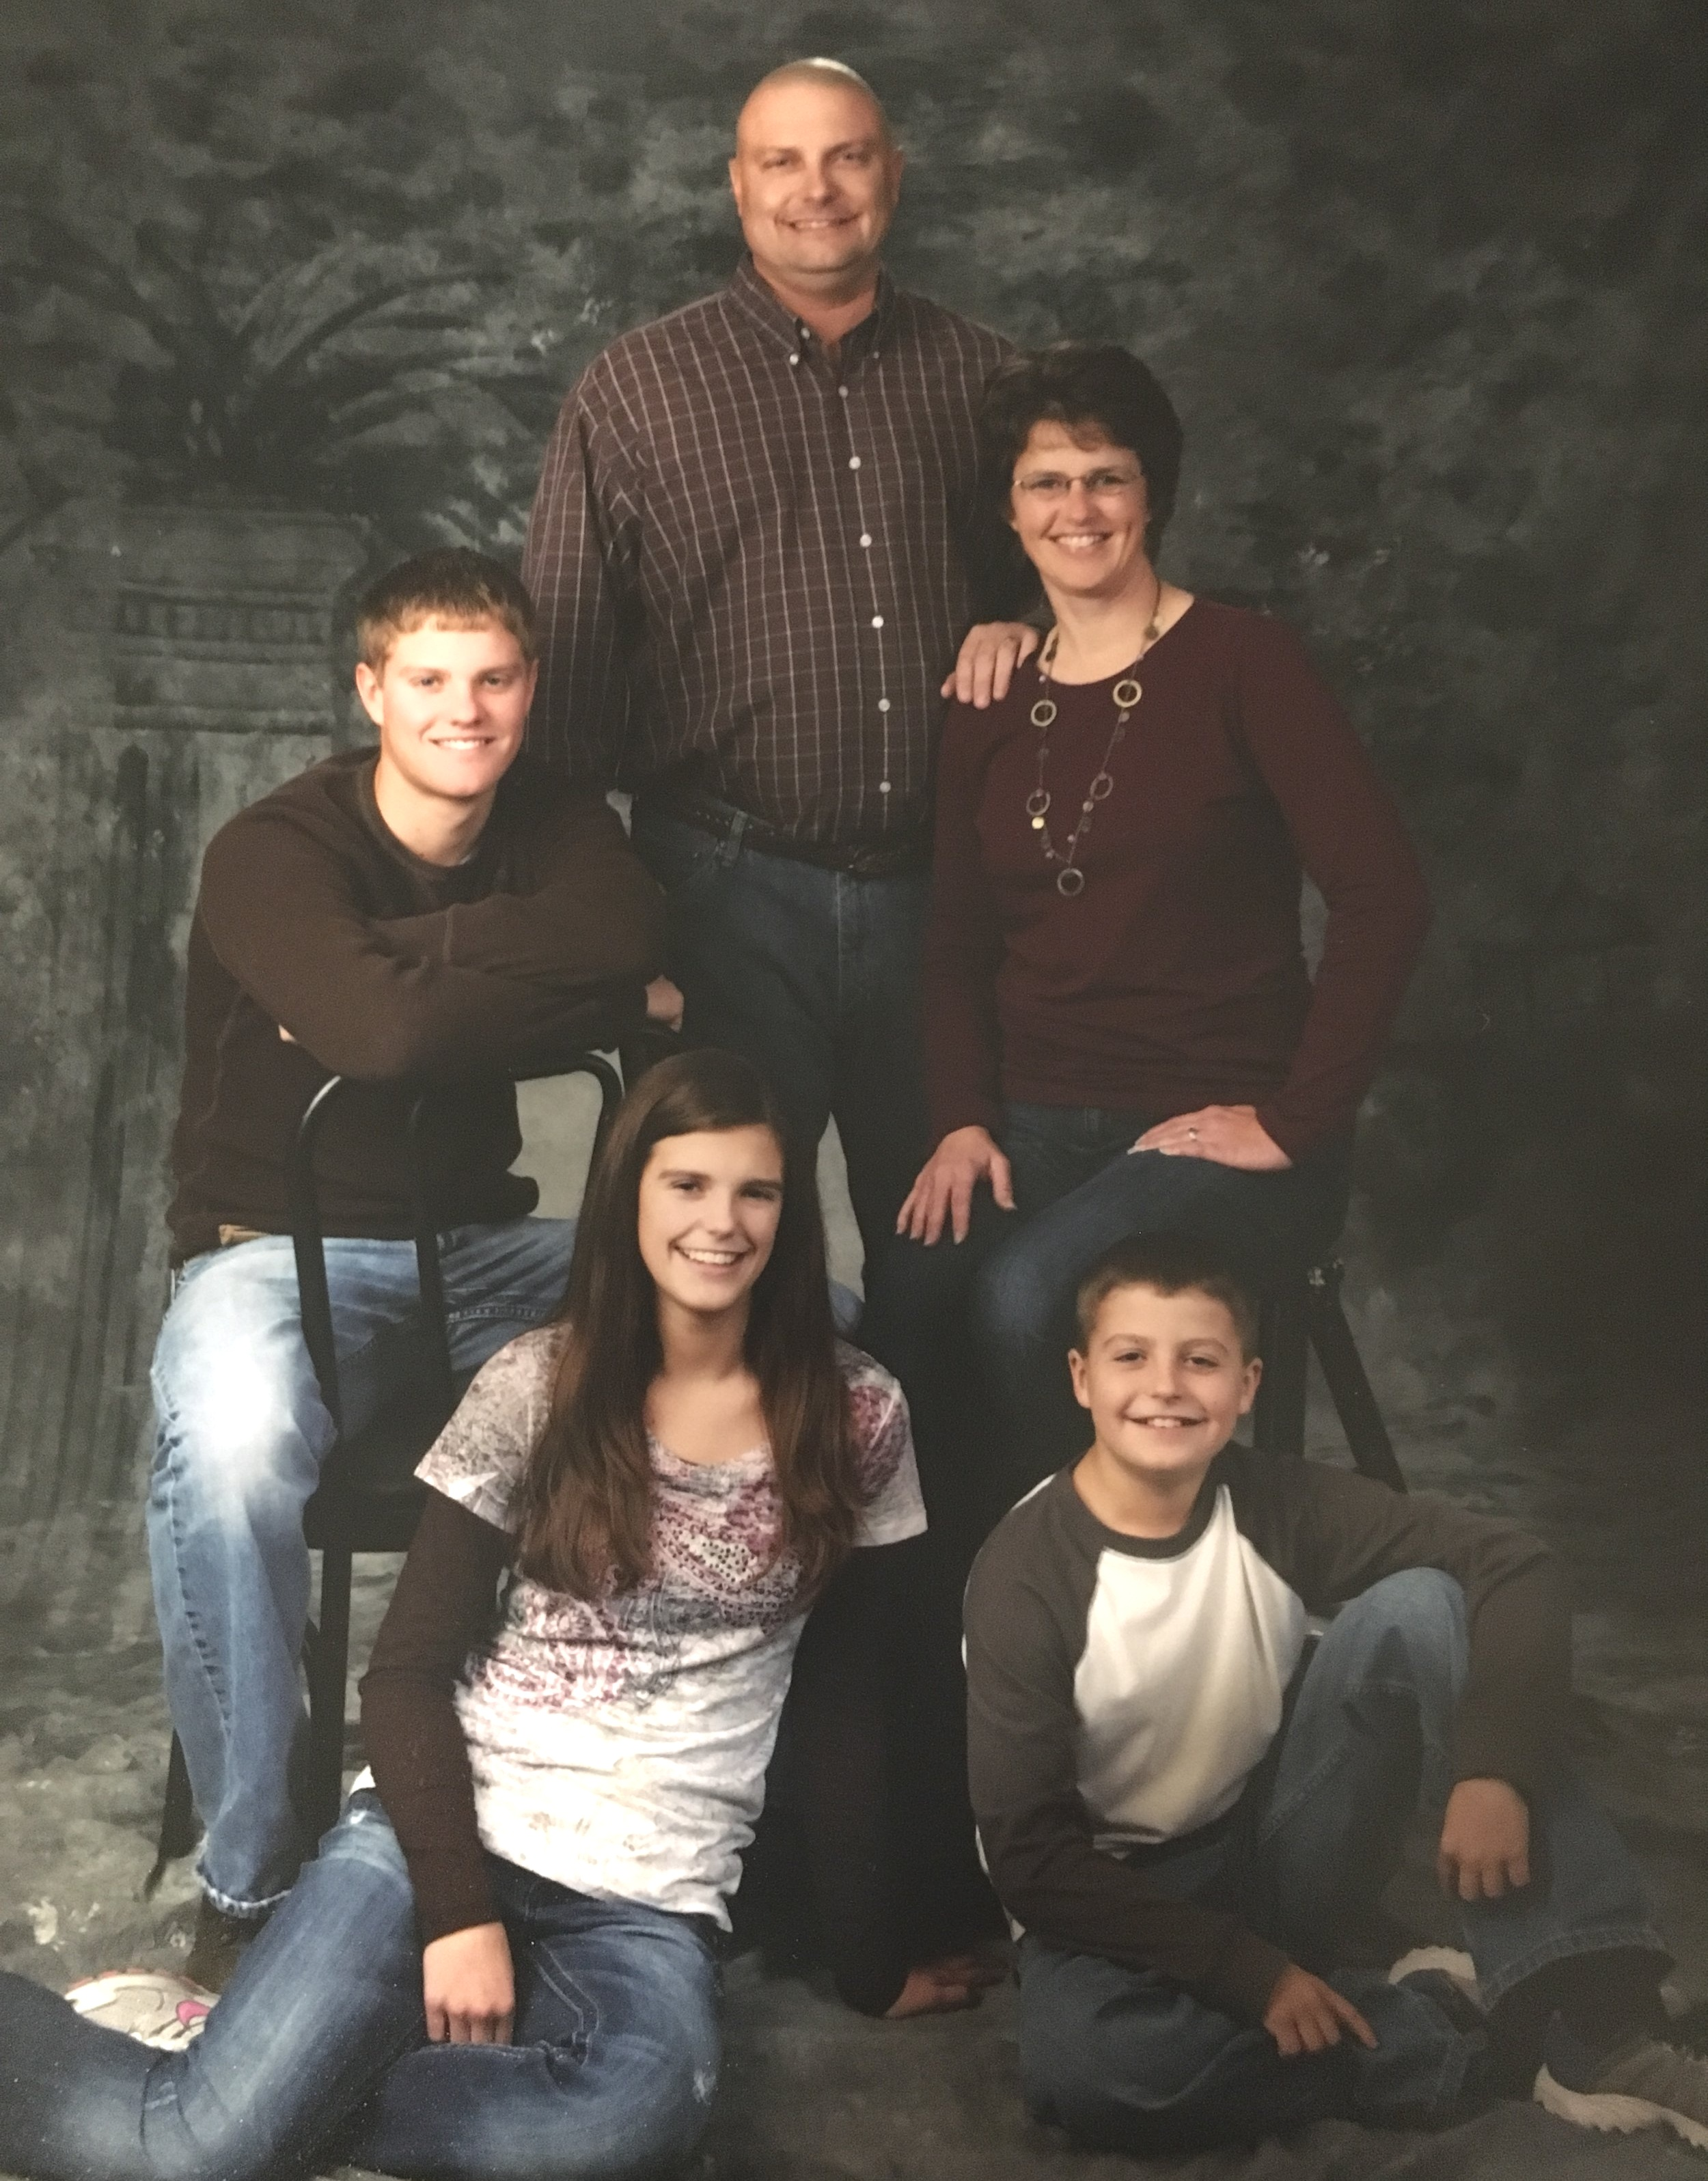 """the bachle family - """"In March of 2011, my husband was diagnosed with glioblastoma stage 4 brain cancer. The Grace Cancer Foundation gave our family a gas card that we used when traveling back and forth to UNMC for appointments. You don't really think about travel costs with cancer, but they can really add up and that gas card was really a lot of help. Another great thing was that someone involved with the Grace Cancer Foundation reached out to us to see if we could use some assistance. It is truly so hard to ask for help sometimes!THANK YOU for the support!!""""  - Becky Bachle"""